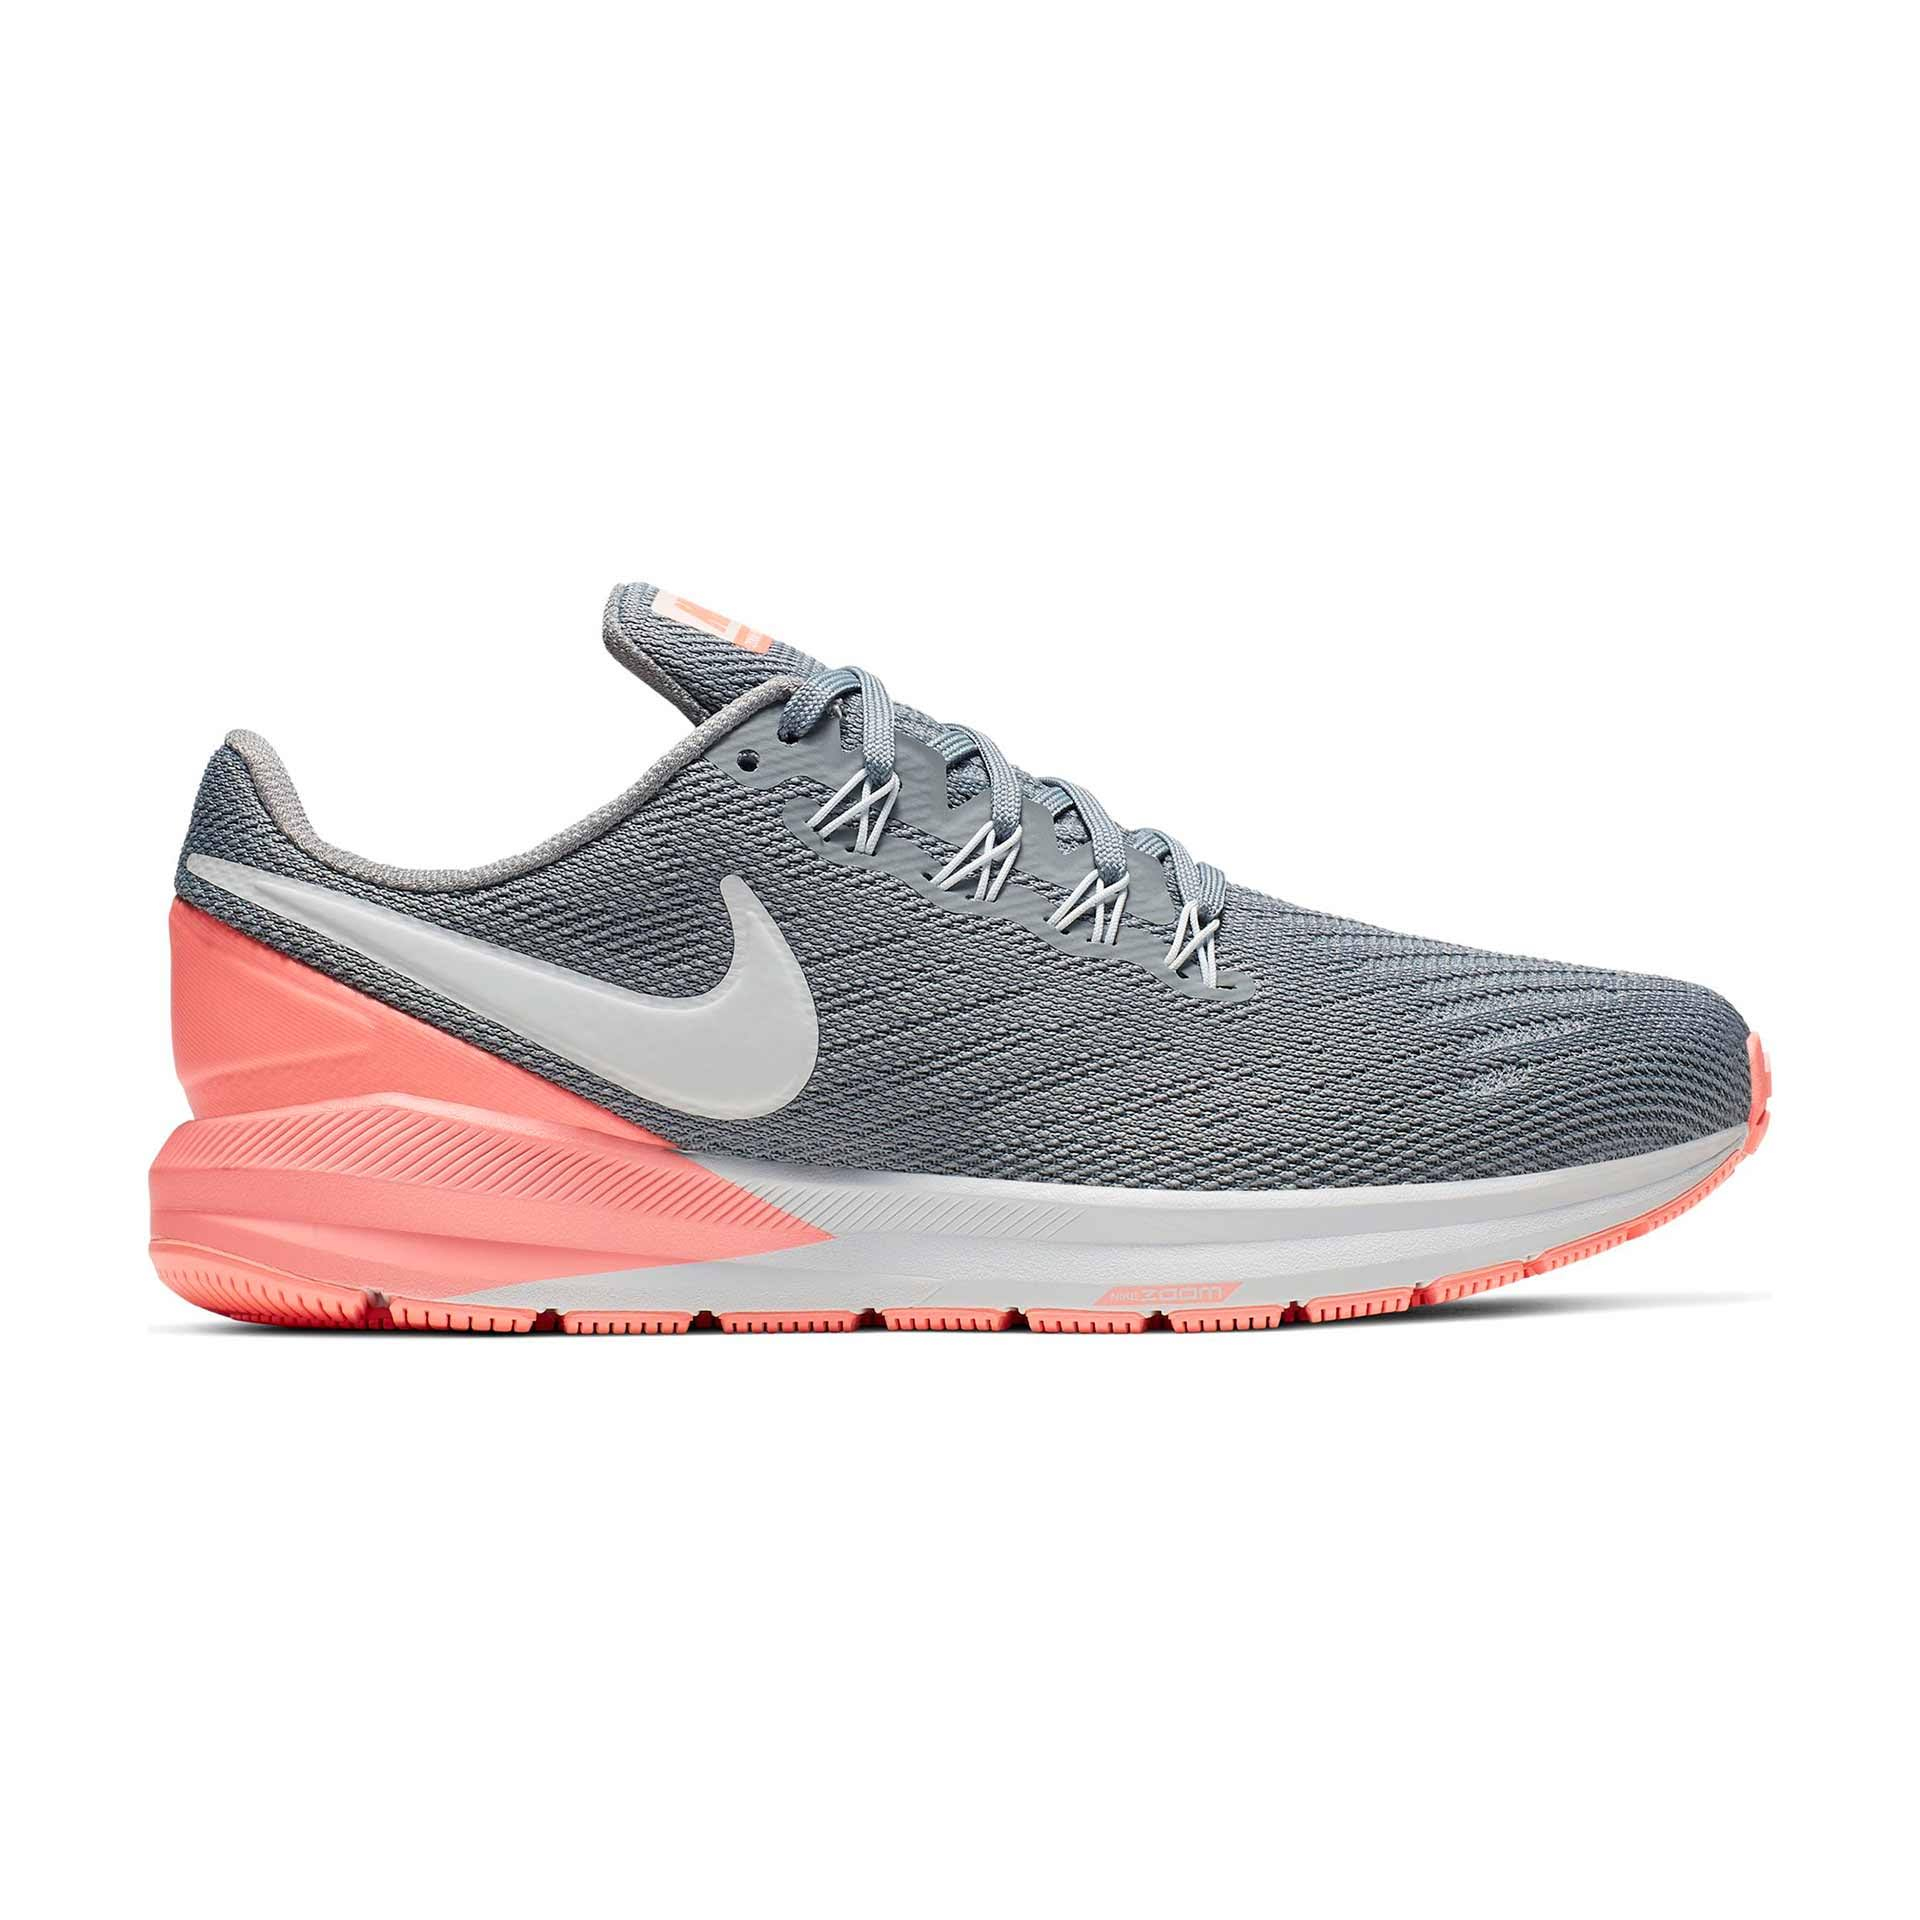 Nike Womens Air Zoom Structure 22 - Grey - 5